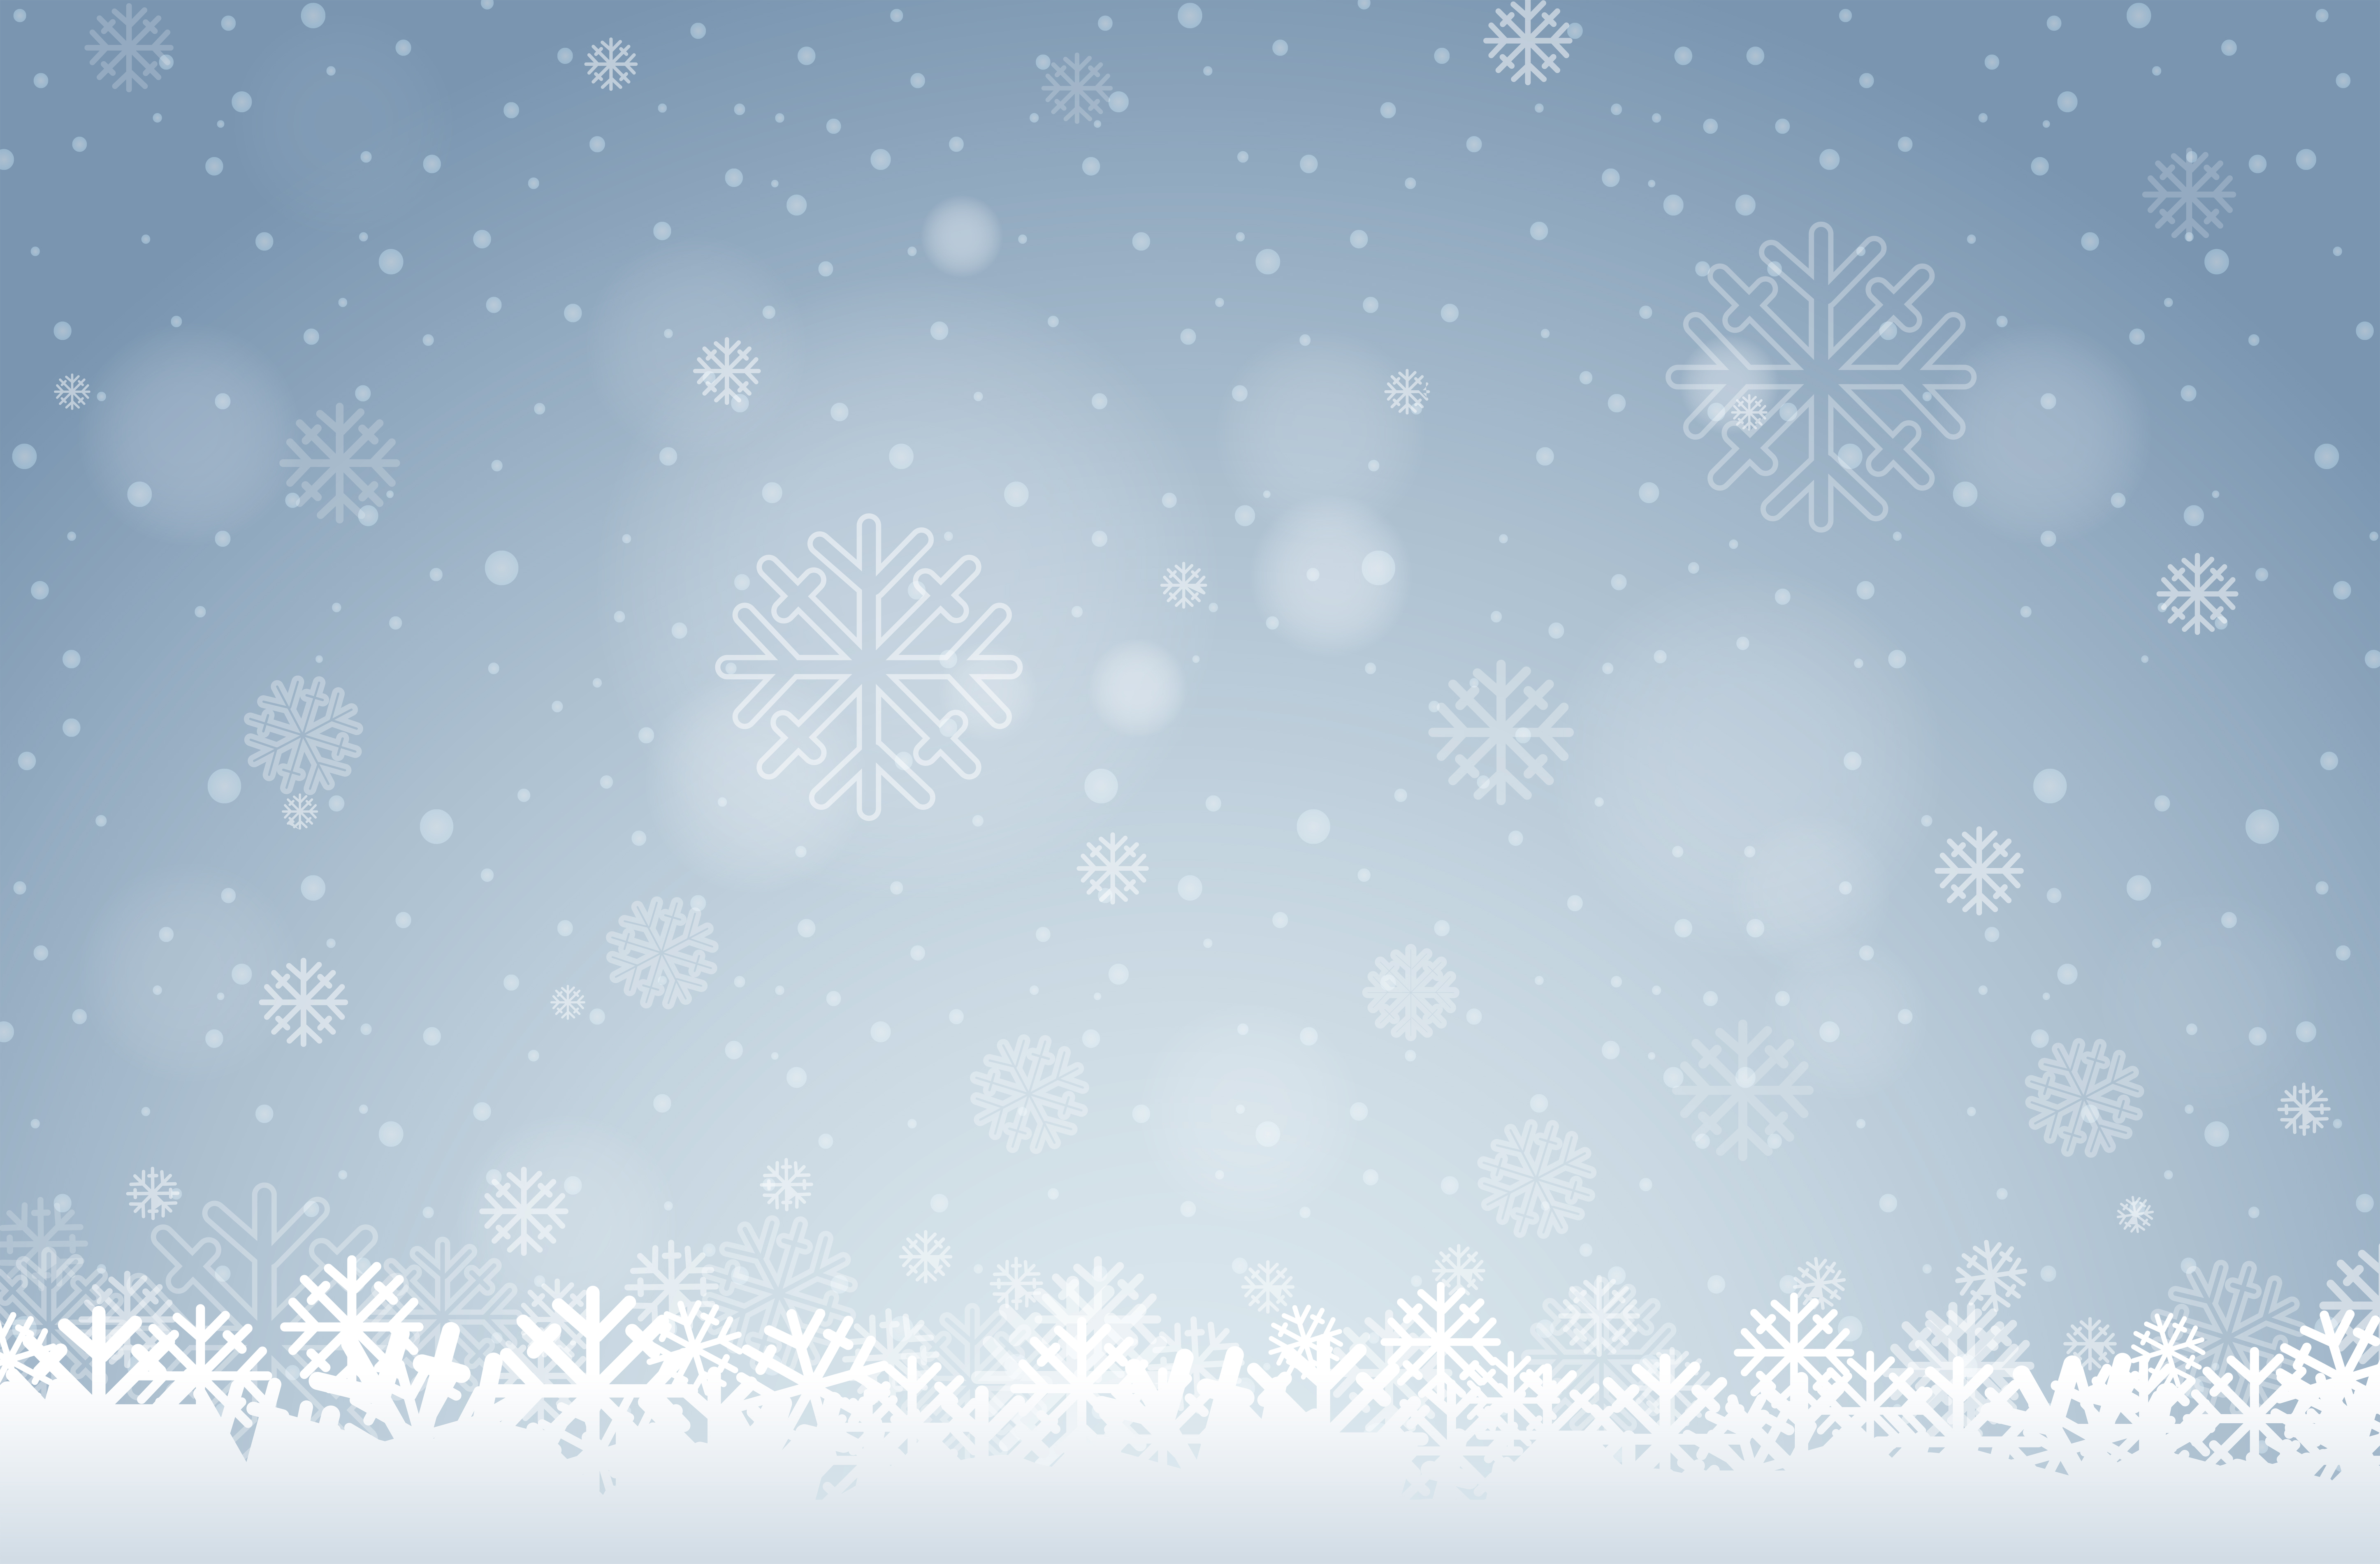 white snowflake pictures free download #1632